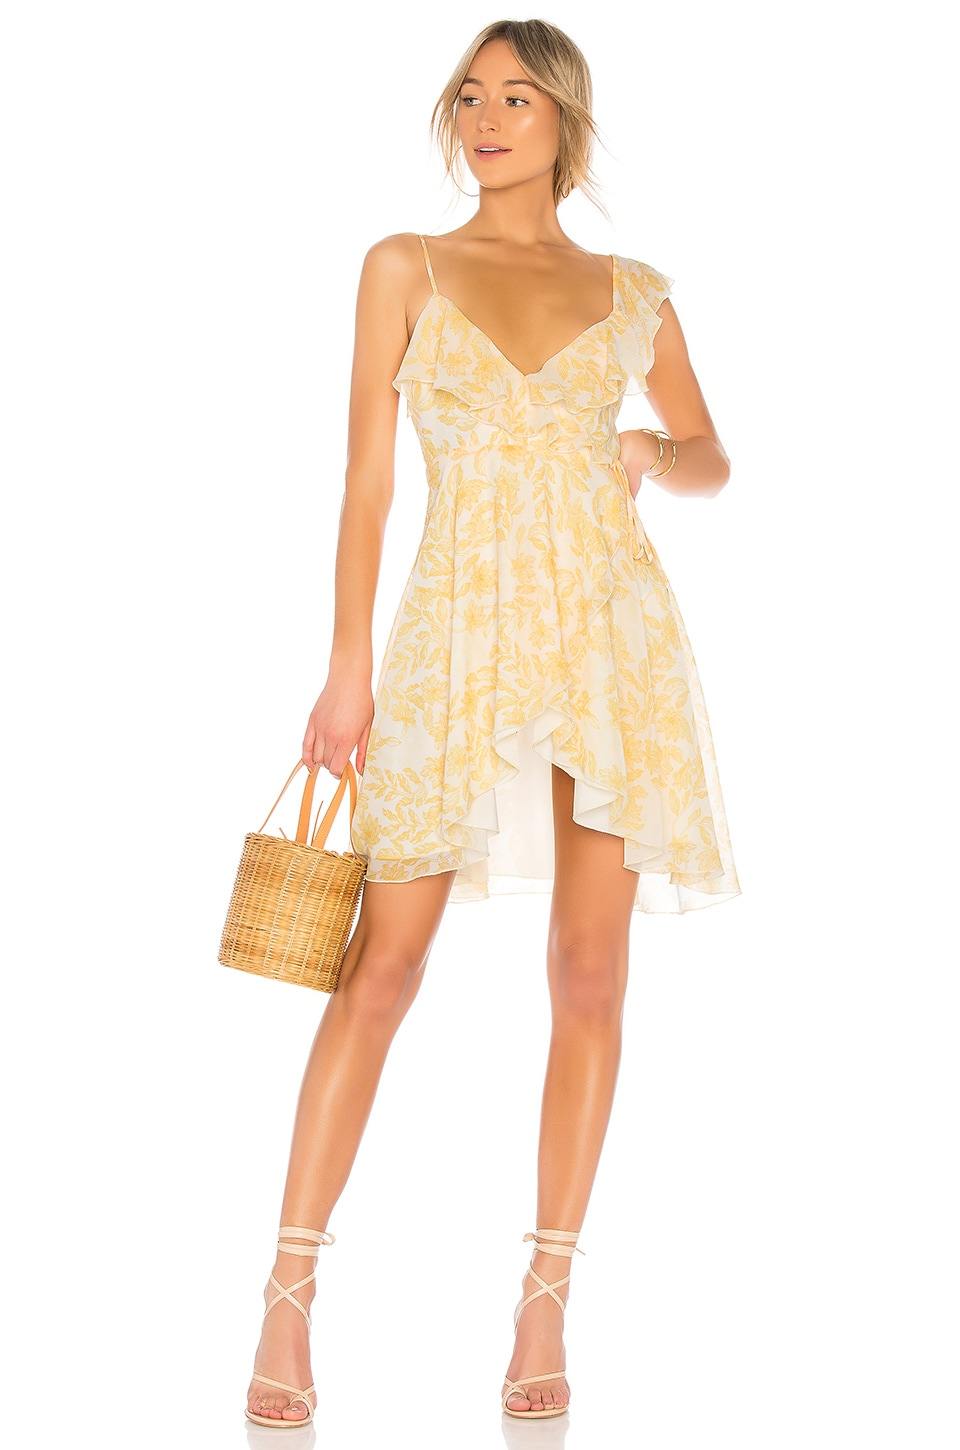 House of Harlow 1960 x REVOLVE Darma Dress in Saffron Floral